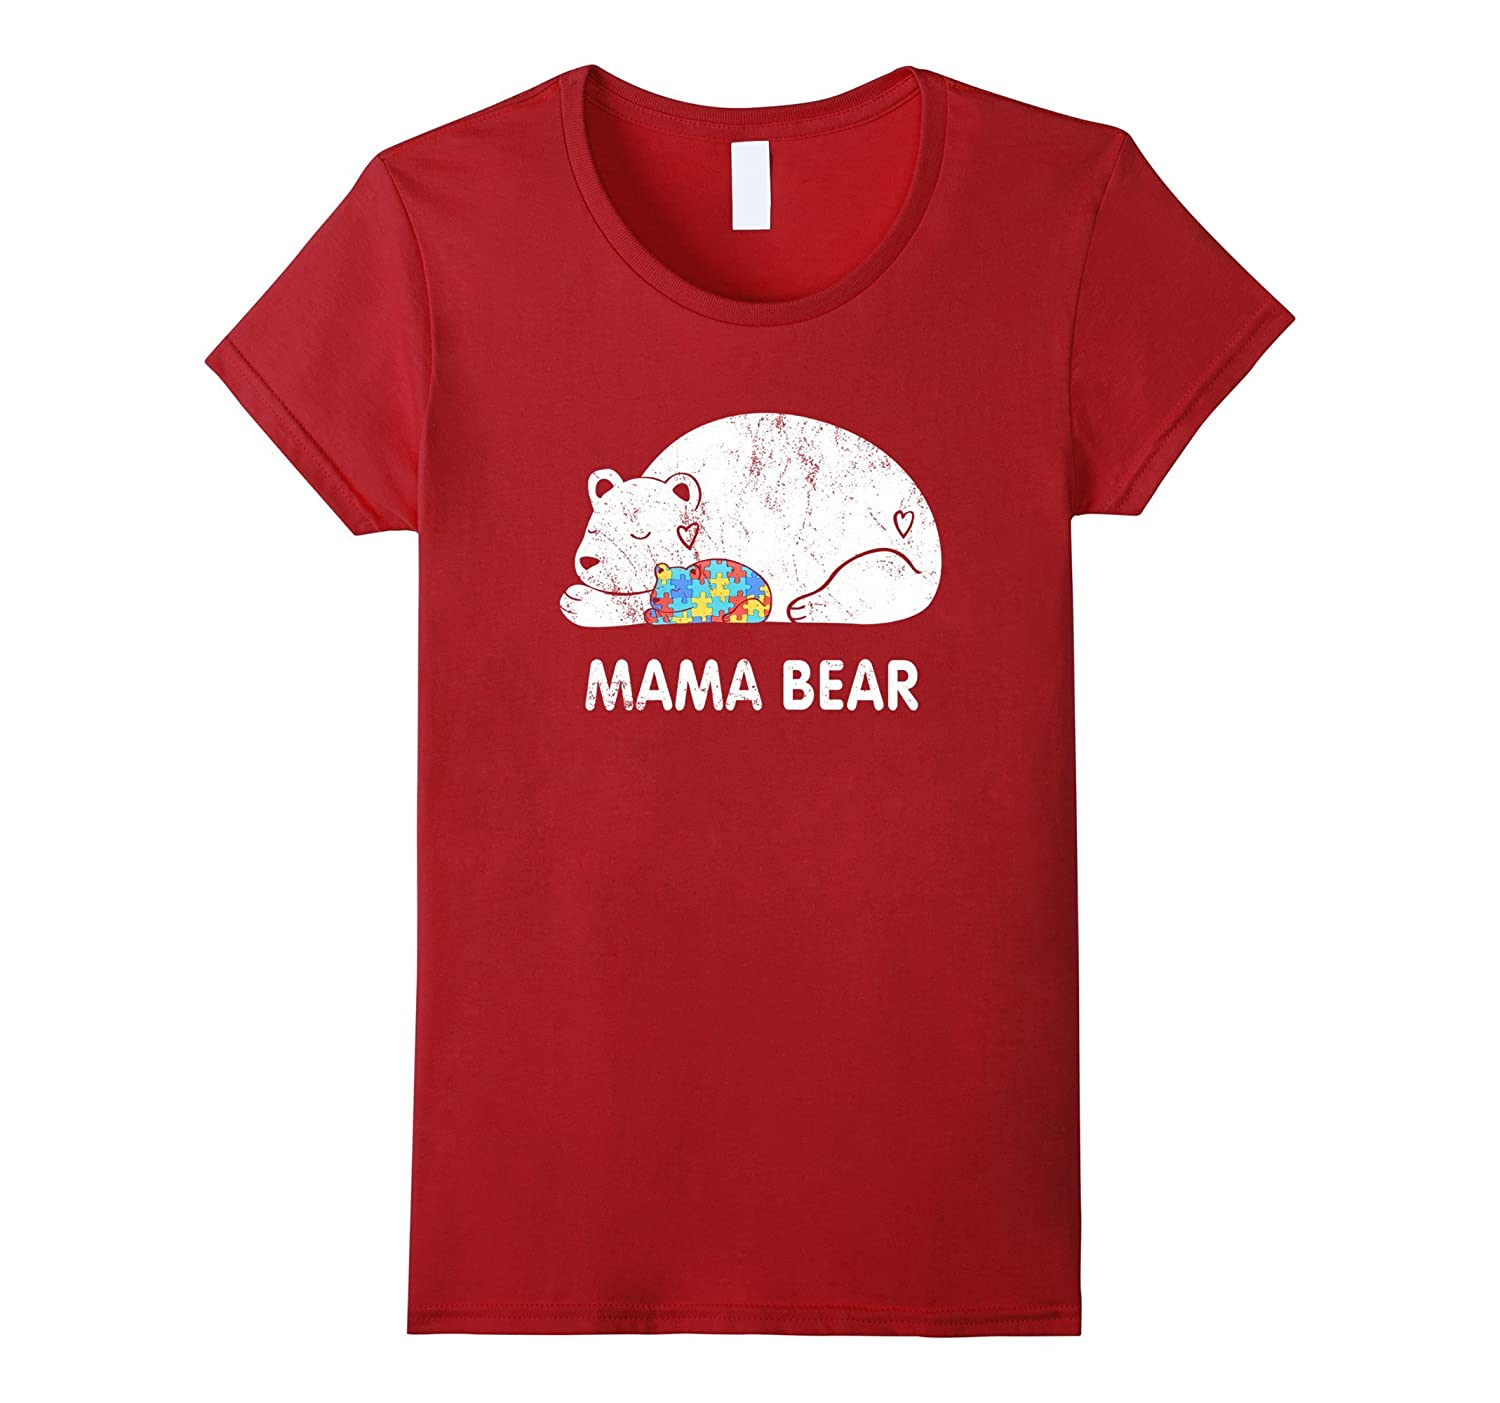 Mama Bear T-Shirt – Autism Awareness Mom Child Son Daughter